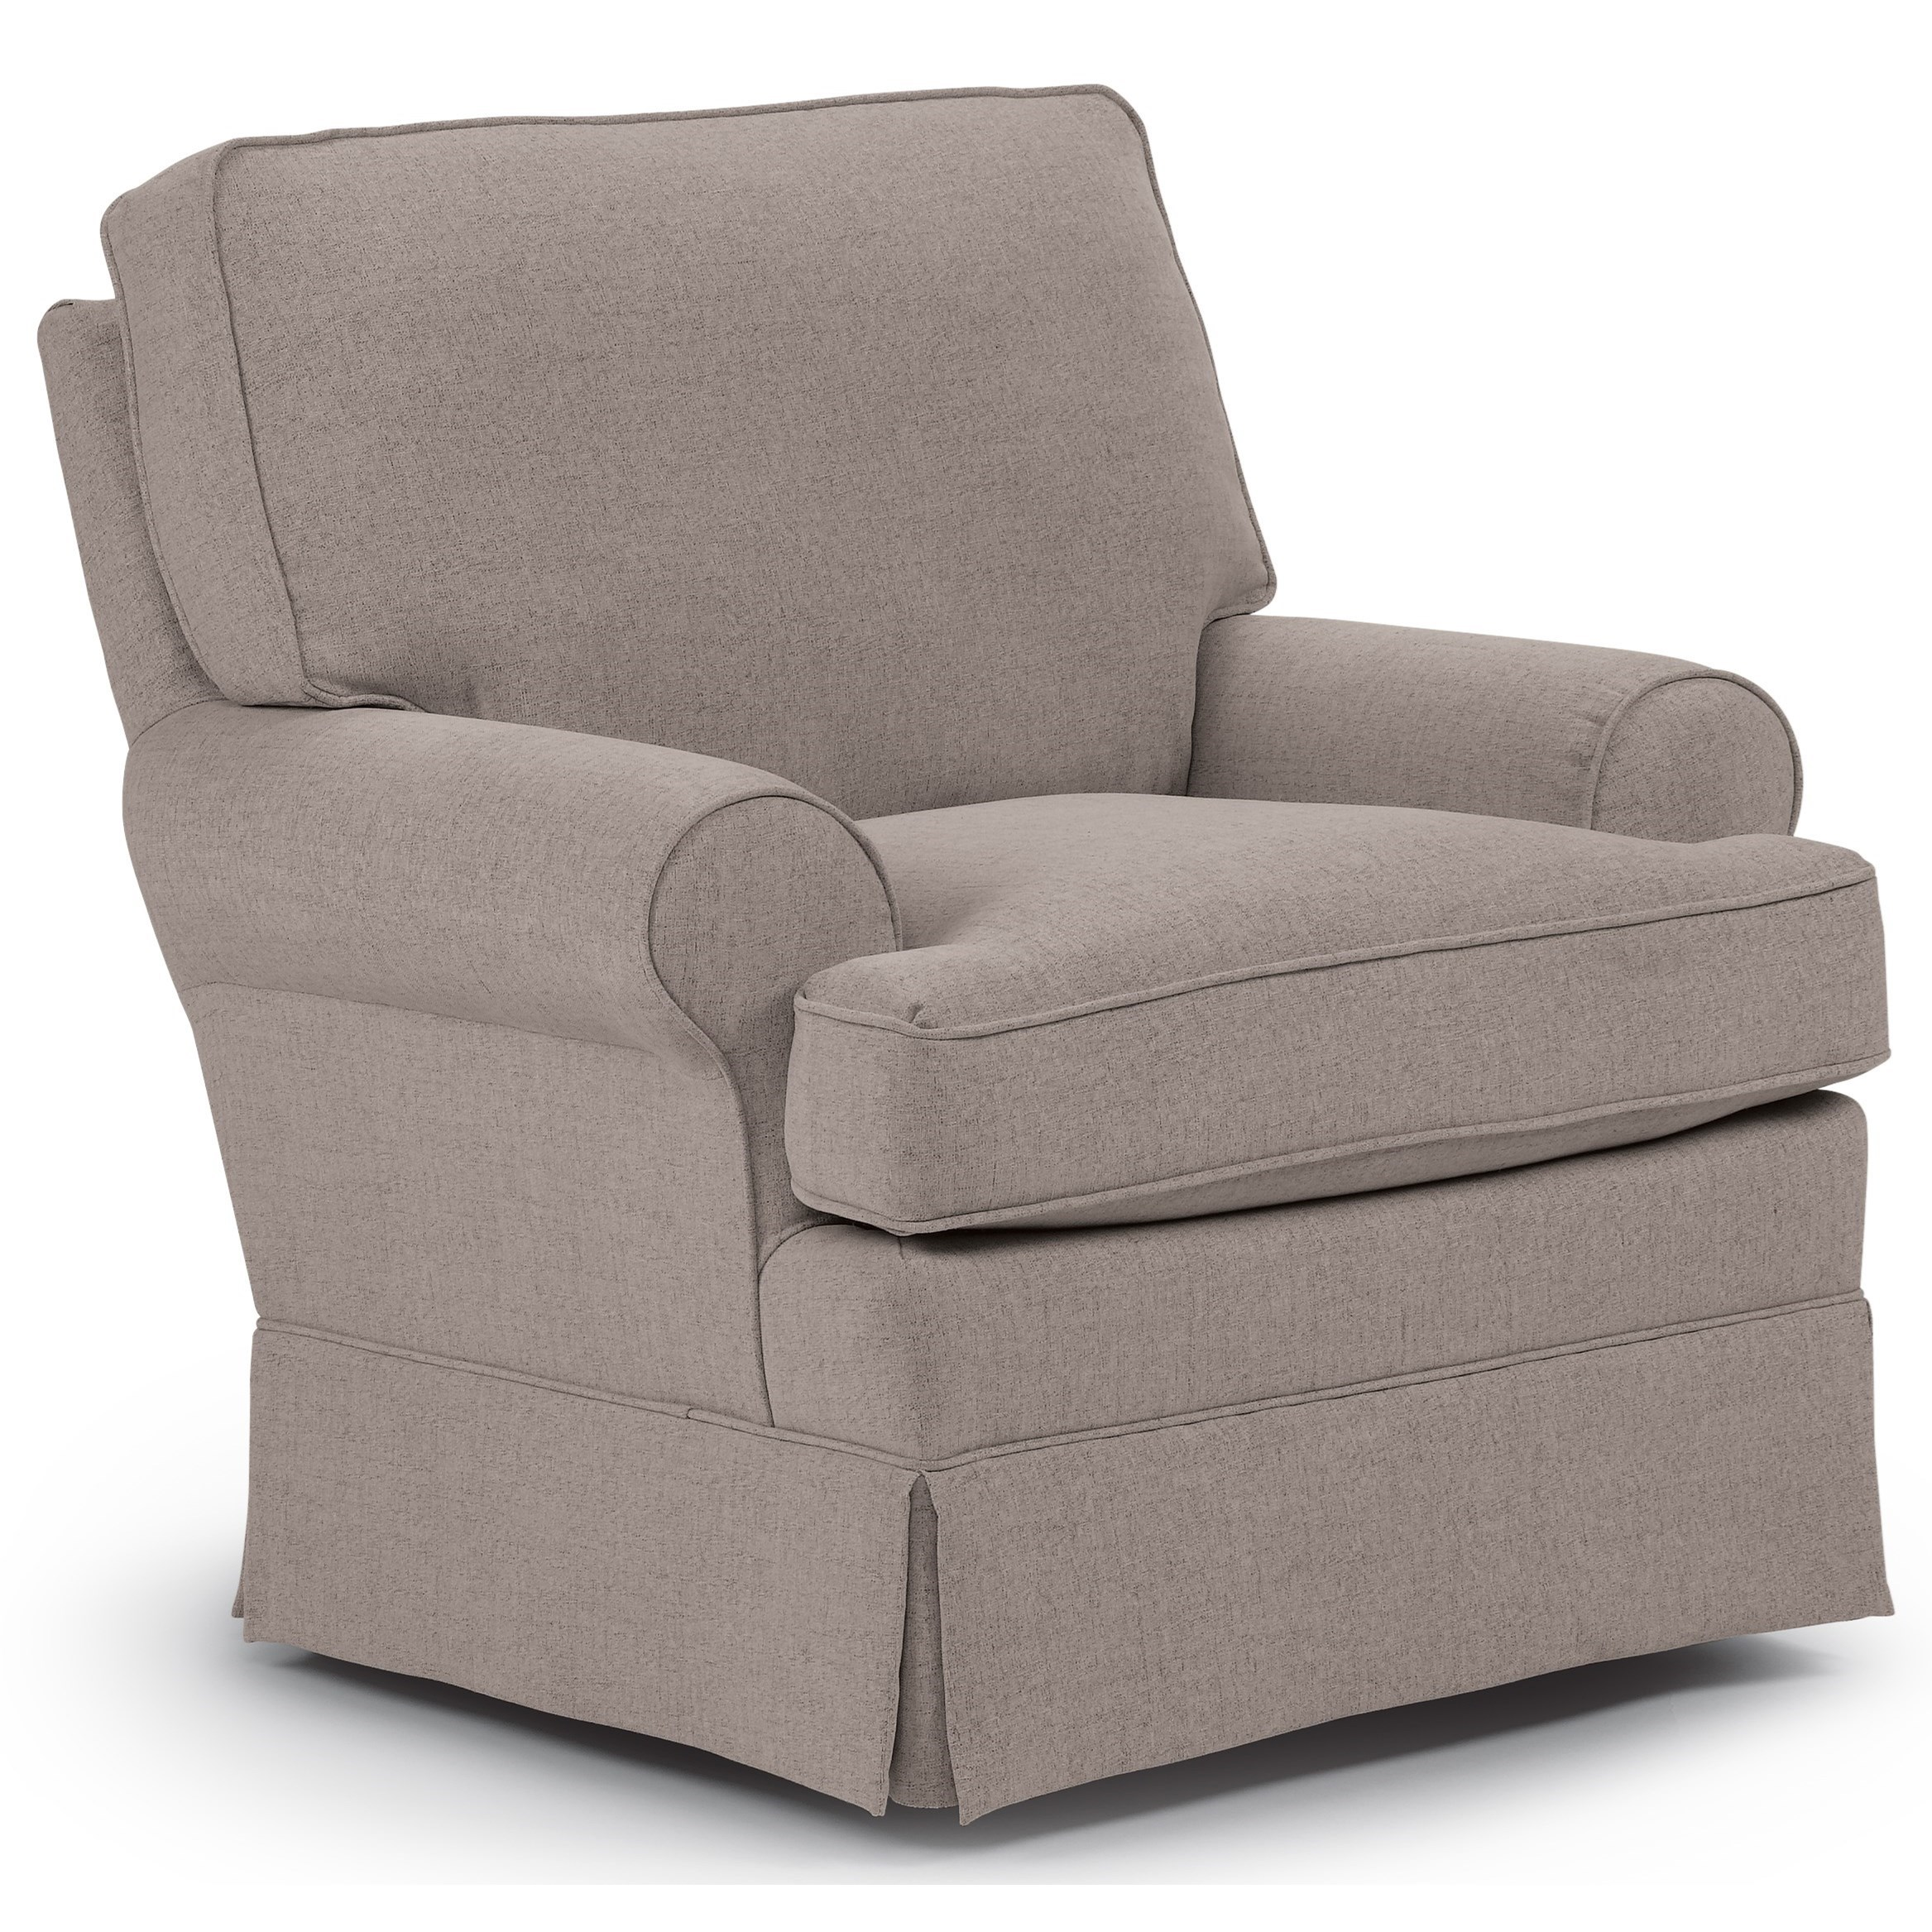 Best Home Furnishings Chairs Swivel Glide Quinn Swivel Glider Chair Without Welt Cord Trim